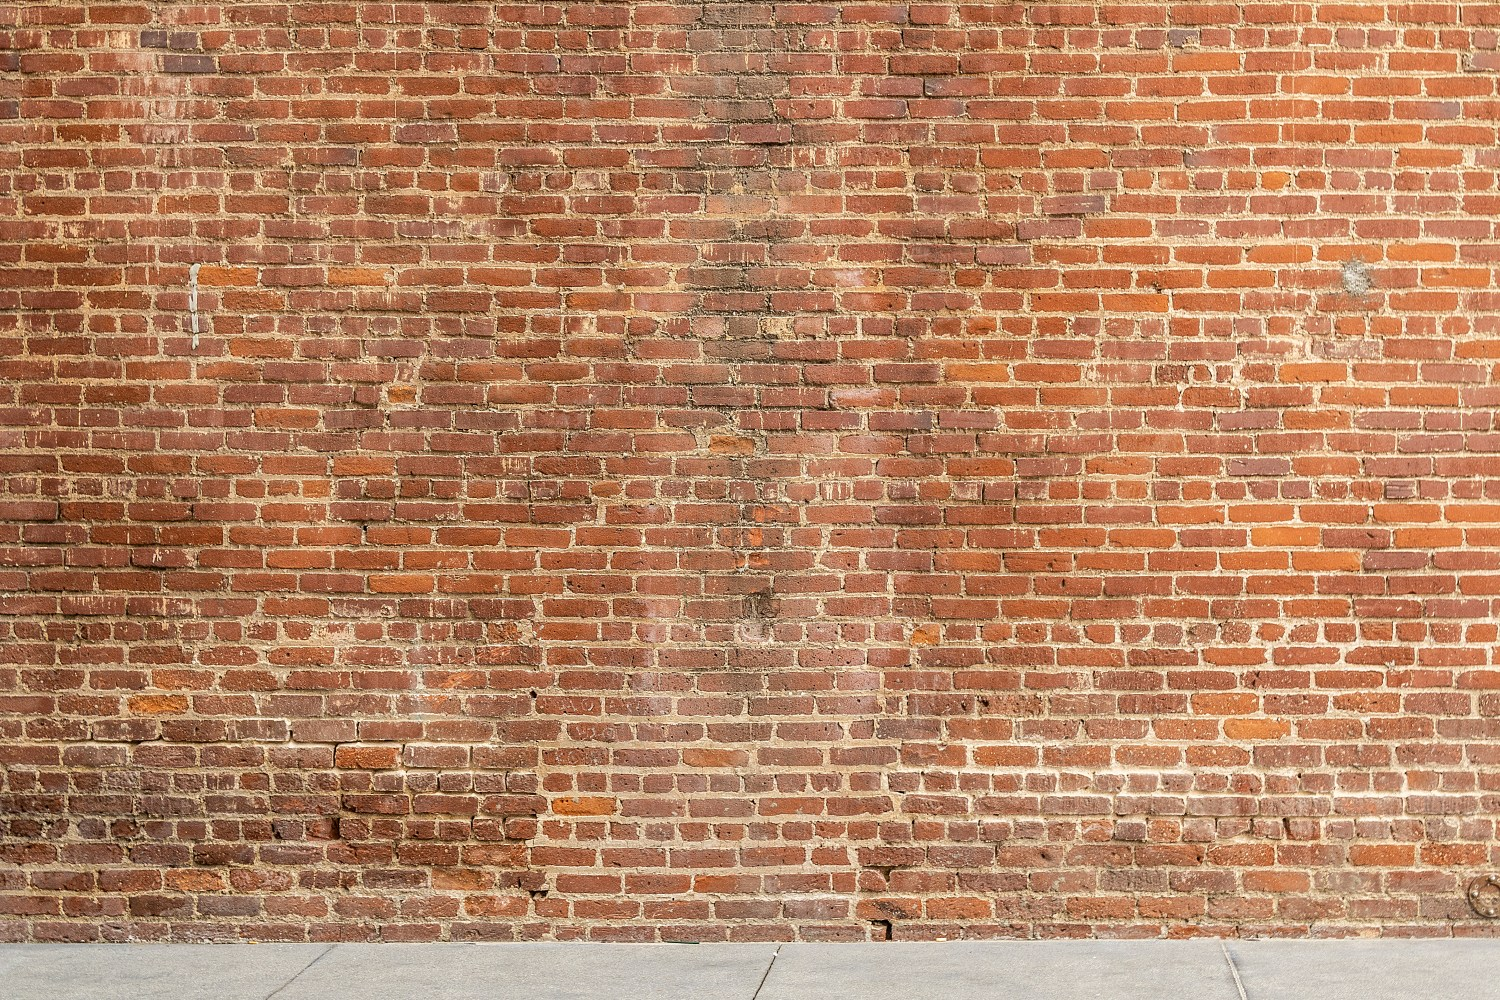 1000 Engaging Wall Background Photos Pexels Free Stock